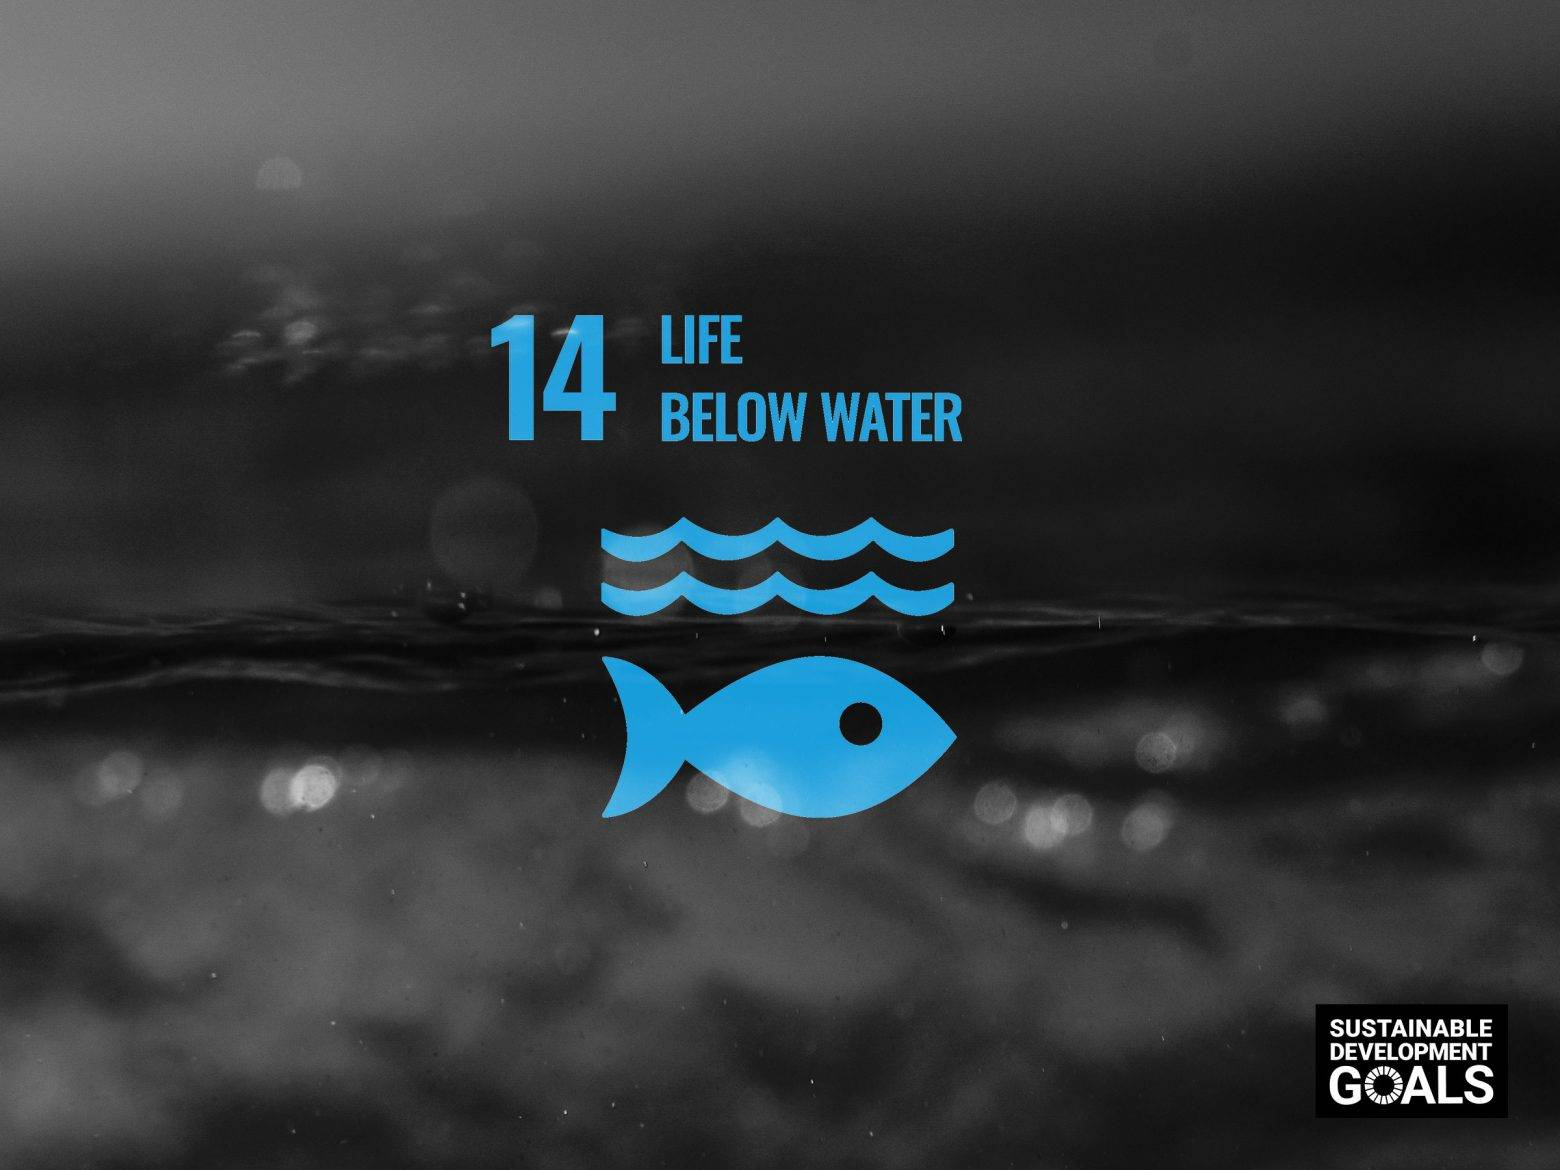 https://www.soulandsurf.com/wp-content/uploads/2021/08/our-sustainable-ish-plan-S_S-UNSDG-Life-Below-Water-e1628601861182.jpg Image